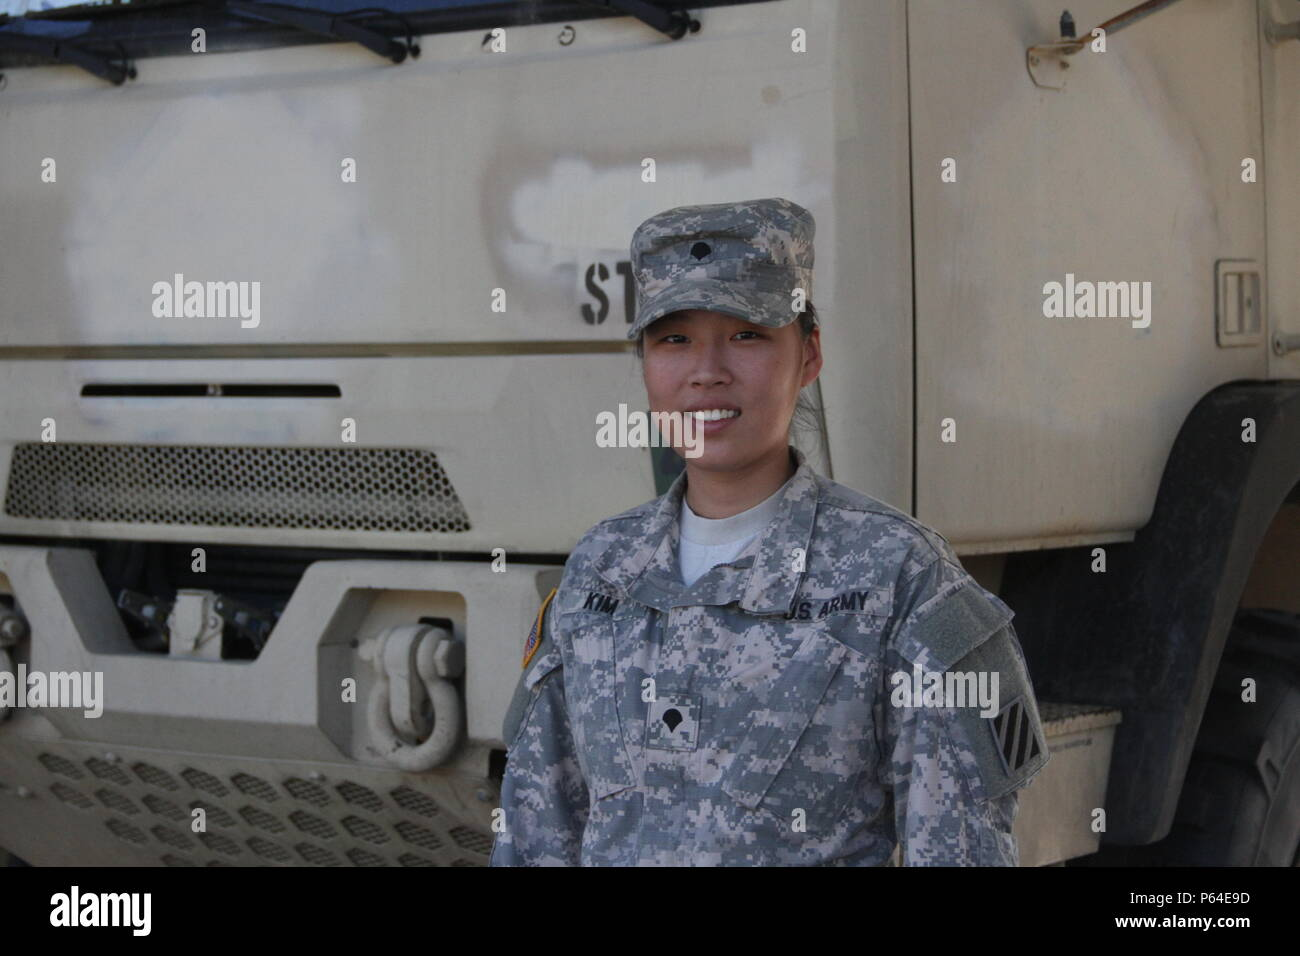 """Spc. Angela Kim, a health care specialist and unit armorer with, Headquarter and Headquarter Company, 9th Brigade Engineer Battalion, 2nd Infantry Brigade Combat Team, 3rd Infantry Division. """"If I could tell my younger self something, it would be not to take too long planning and being afraid of something new, because I have really found something that is right for me."""" - Stock Image"""